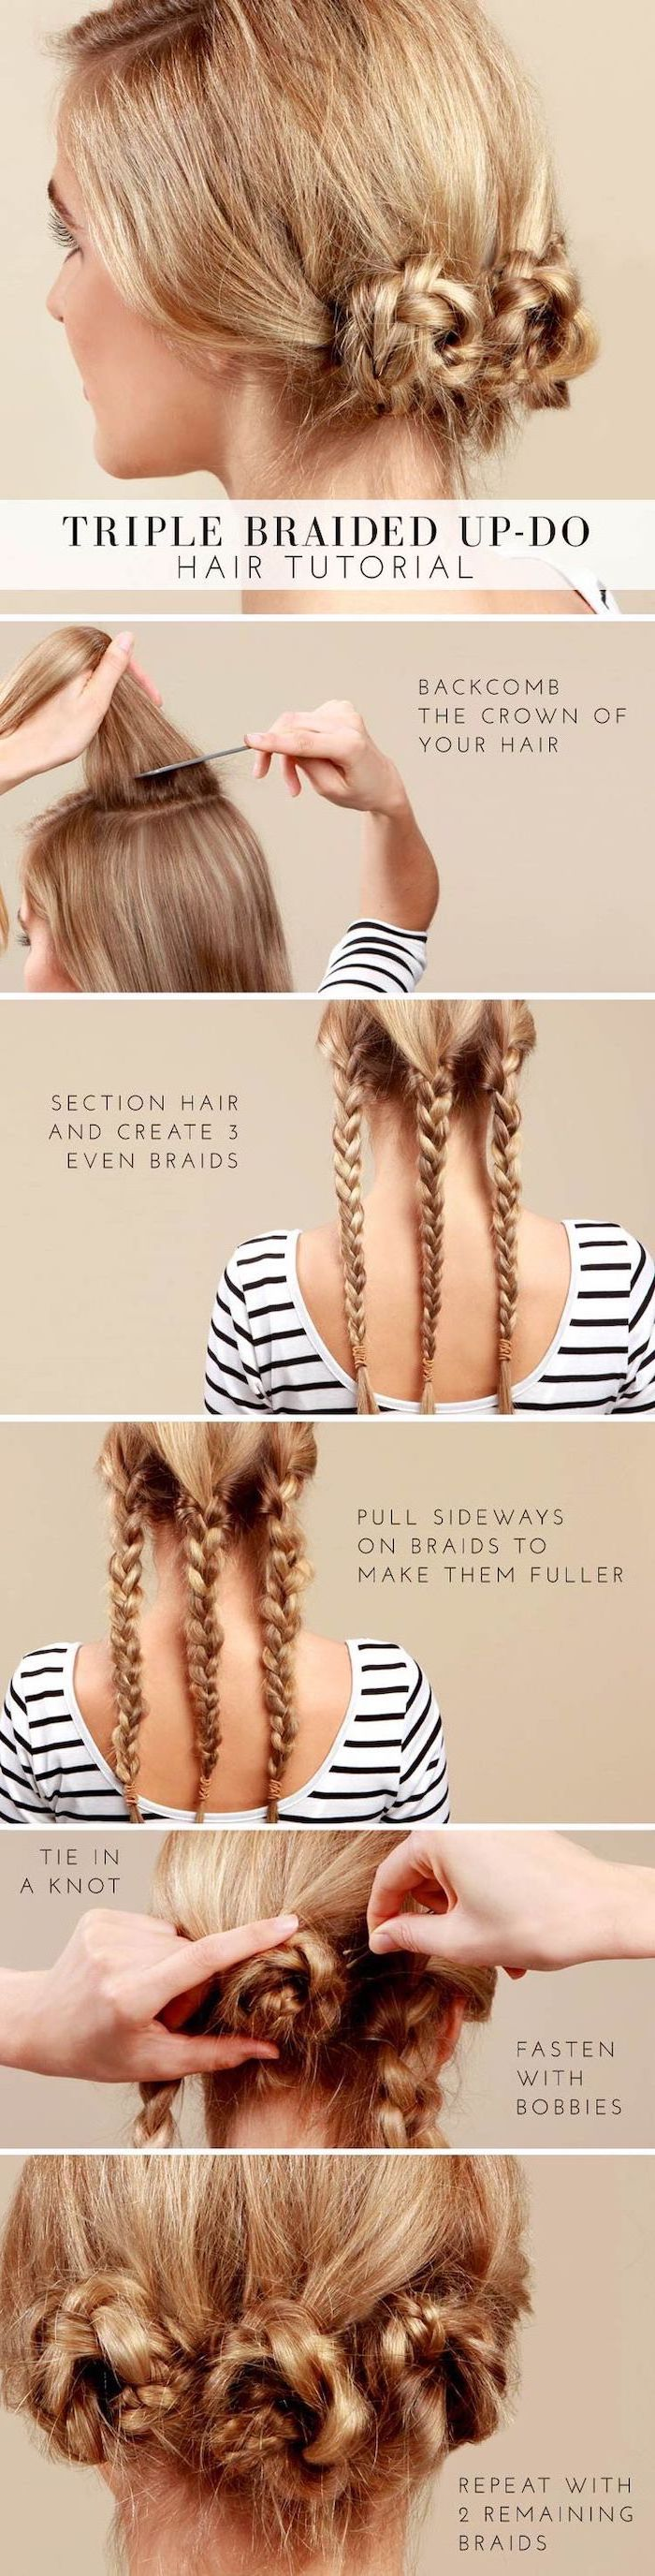 braid hairstyles, step by step, diy tutorial, triple braided updo, blonde hair